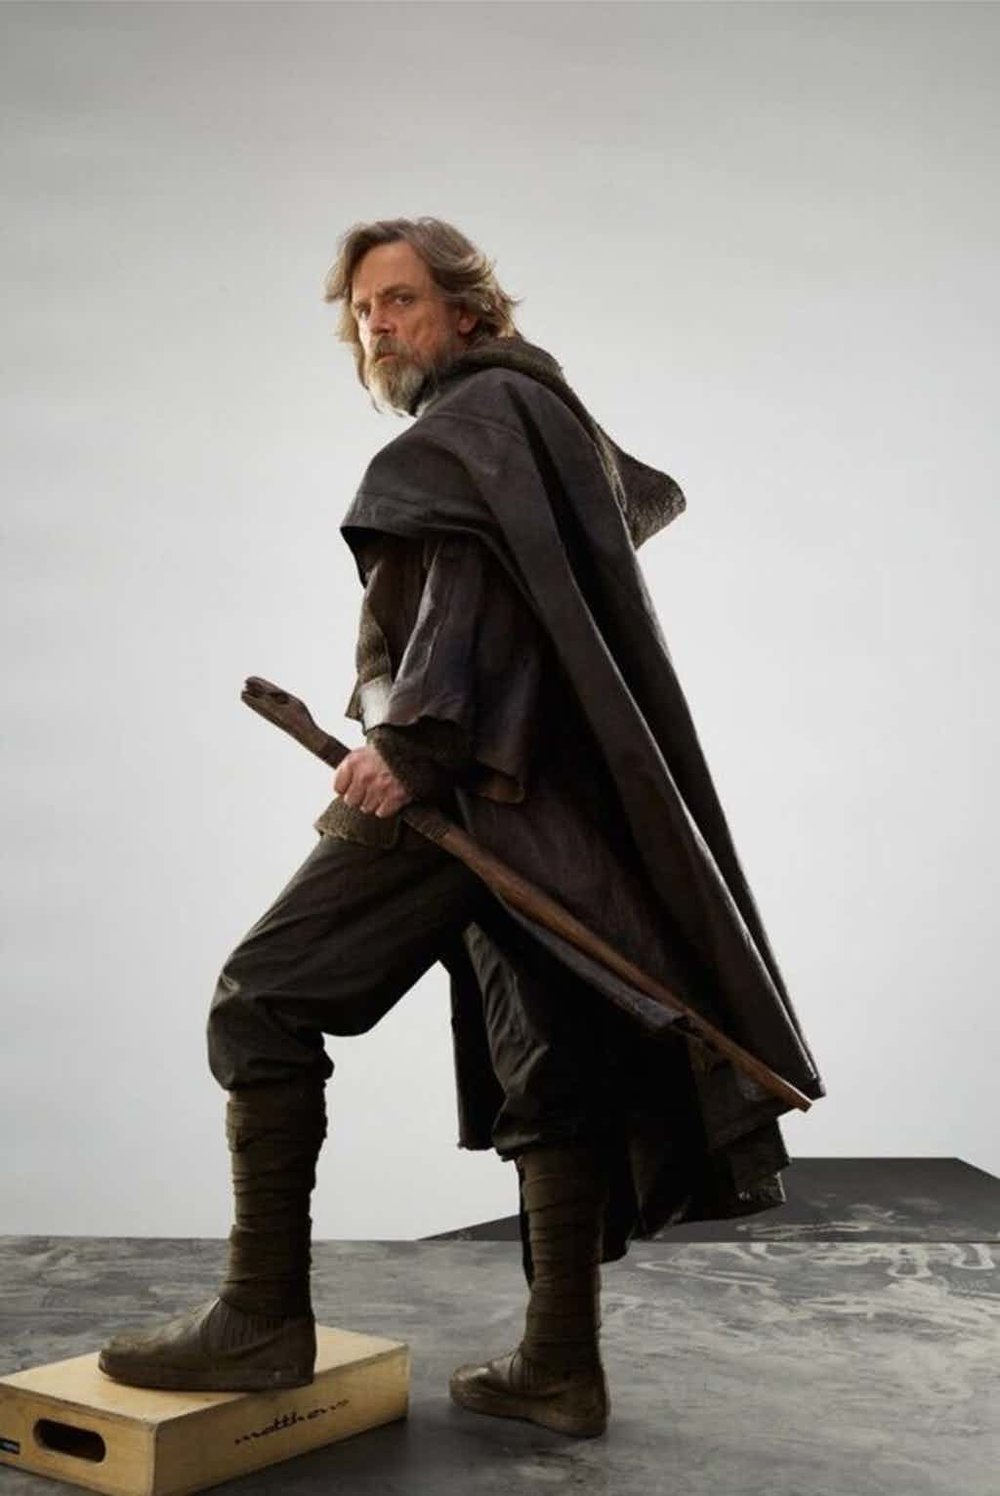 Star-Wars-The-Last-Jedi-Mark-Hammil-as-Luke-Skywalker-in-Brown-Robes-With-Walking-stick.jpg